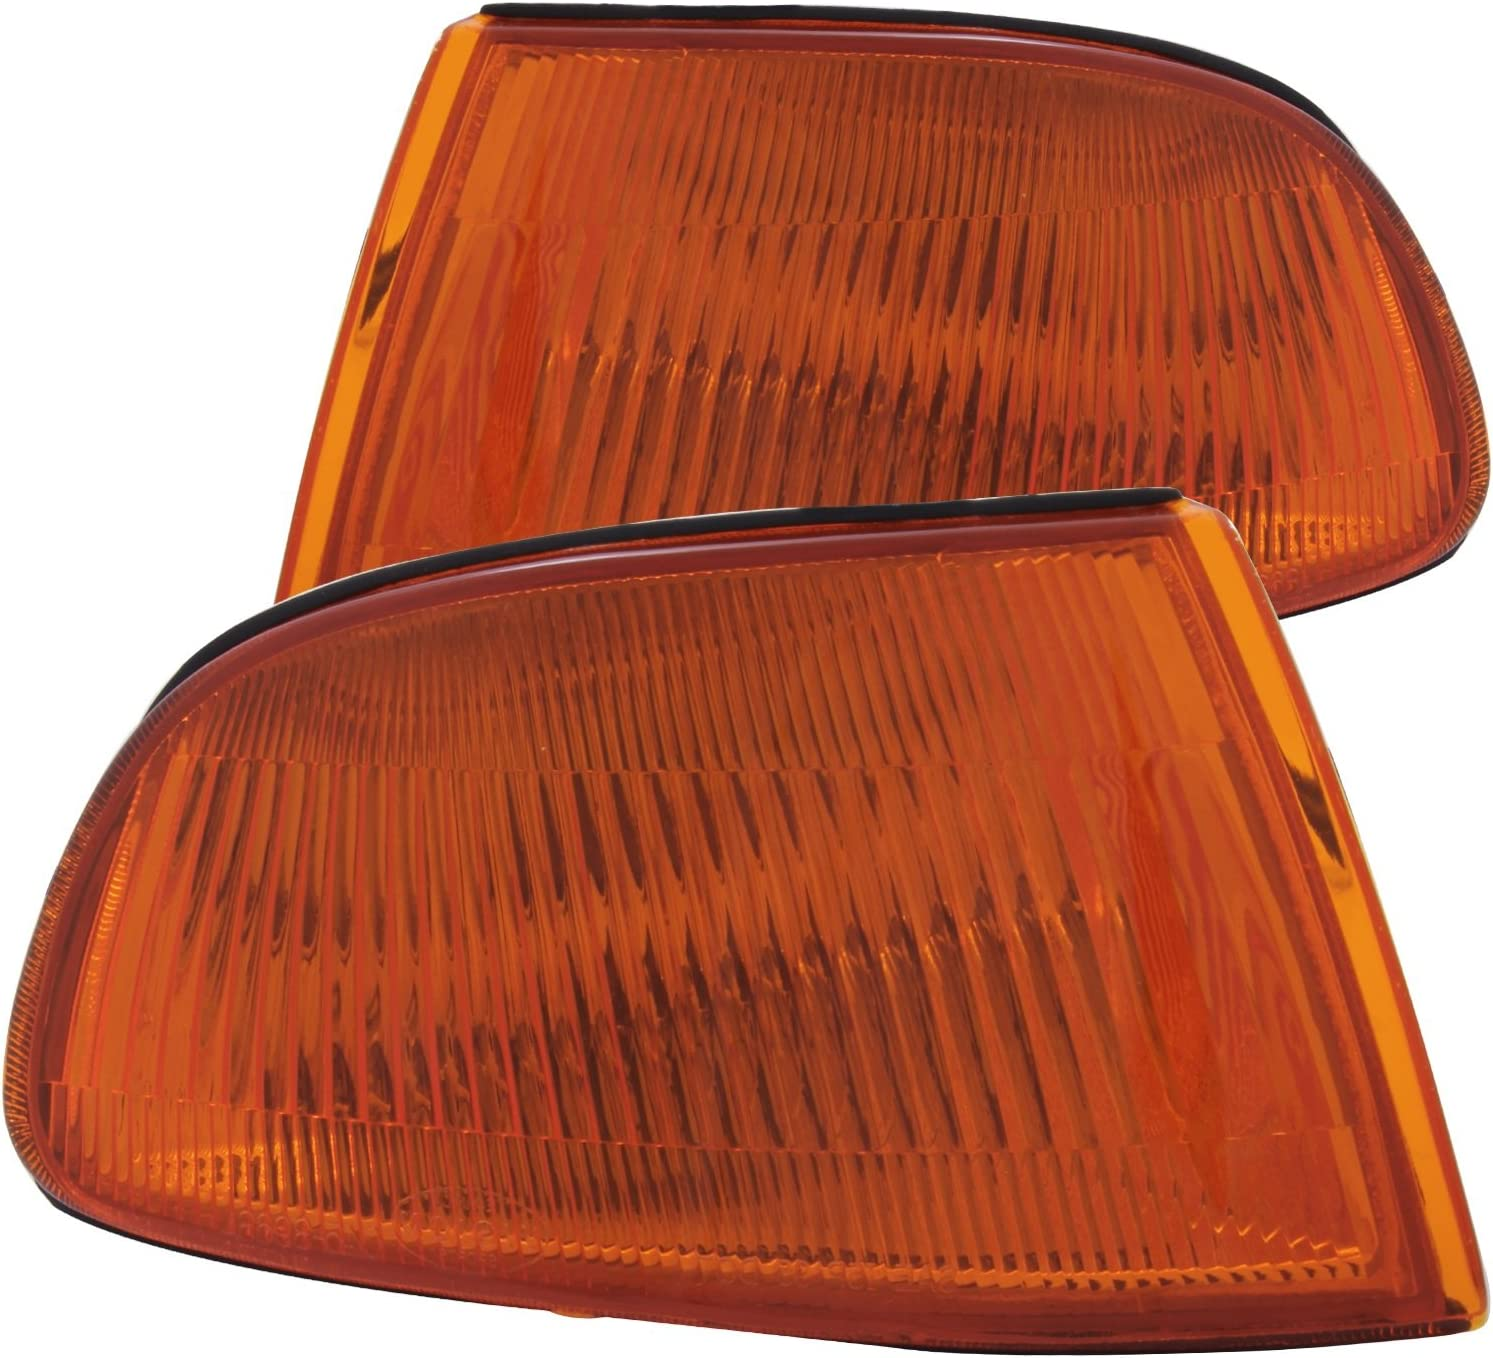 Anzo Special price Clearance SALE Limited time USA 521019 Honda Civic Euro Reflector w Lig Cornering Amber